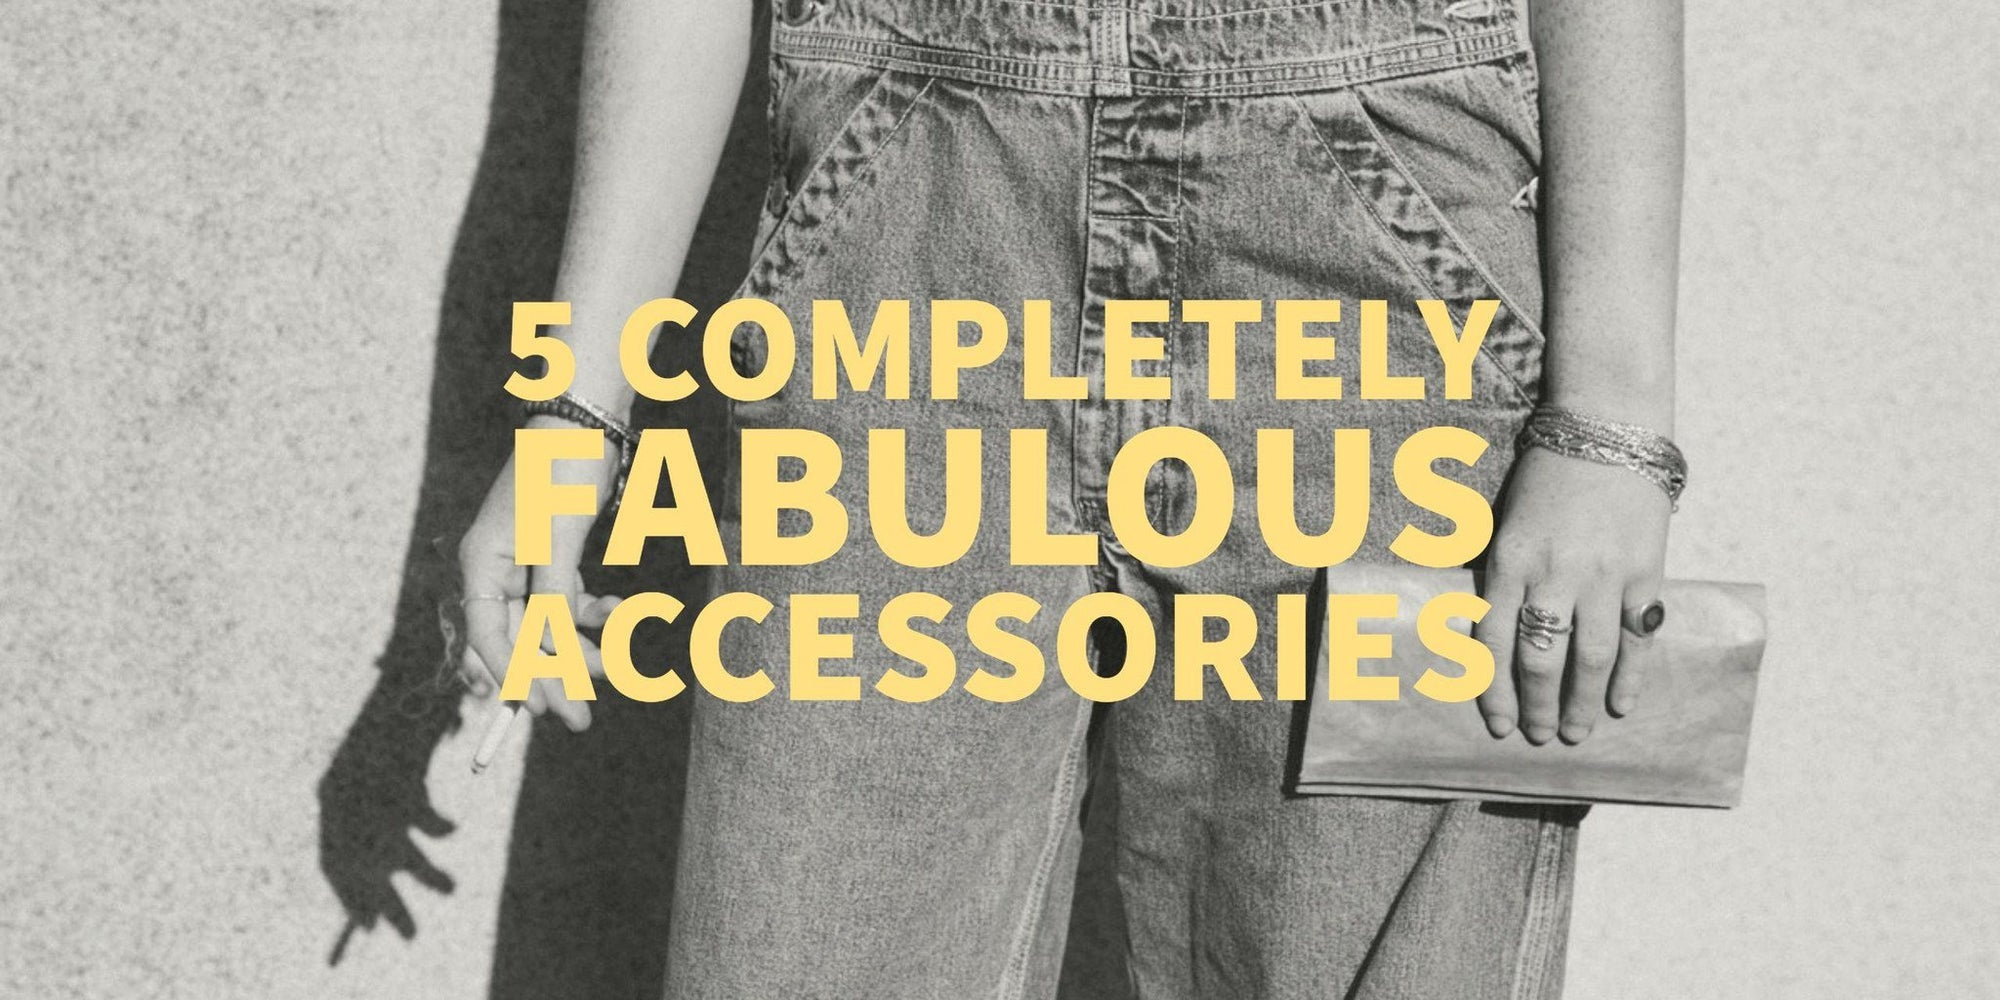 Awesome Accessories that will Impress Anyone!